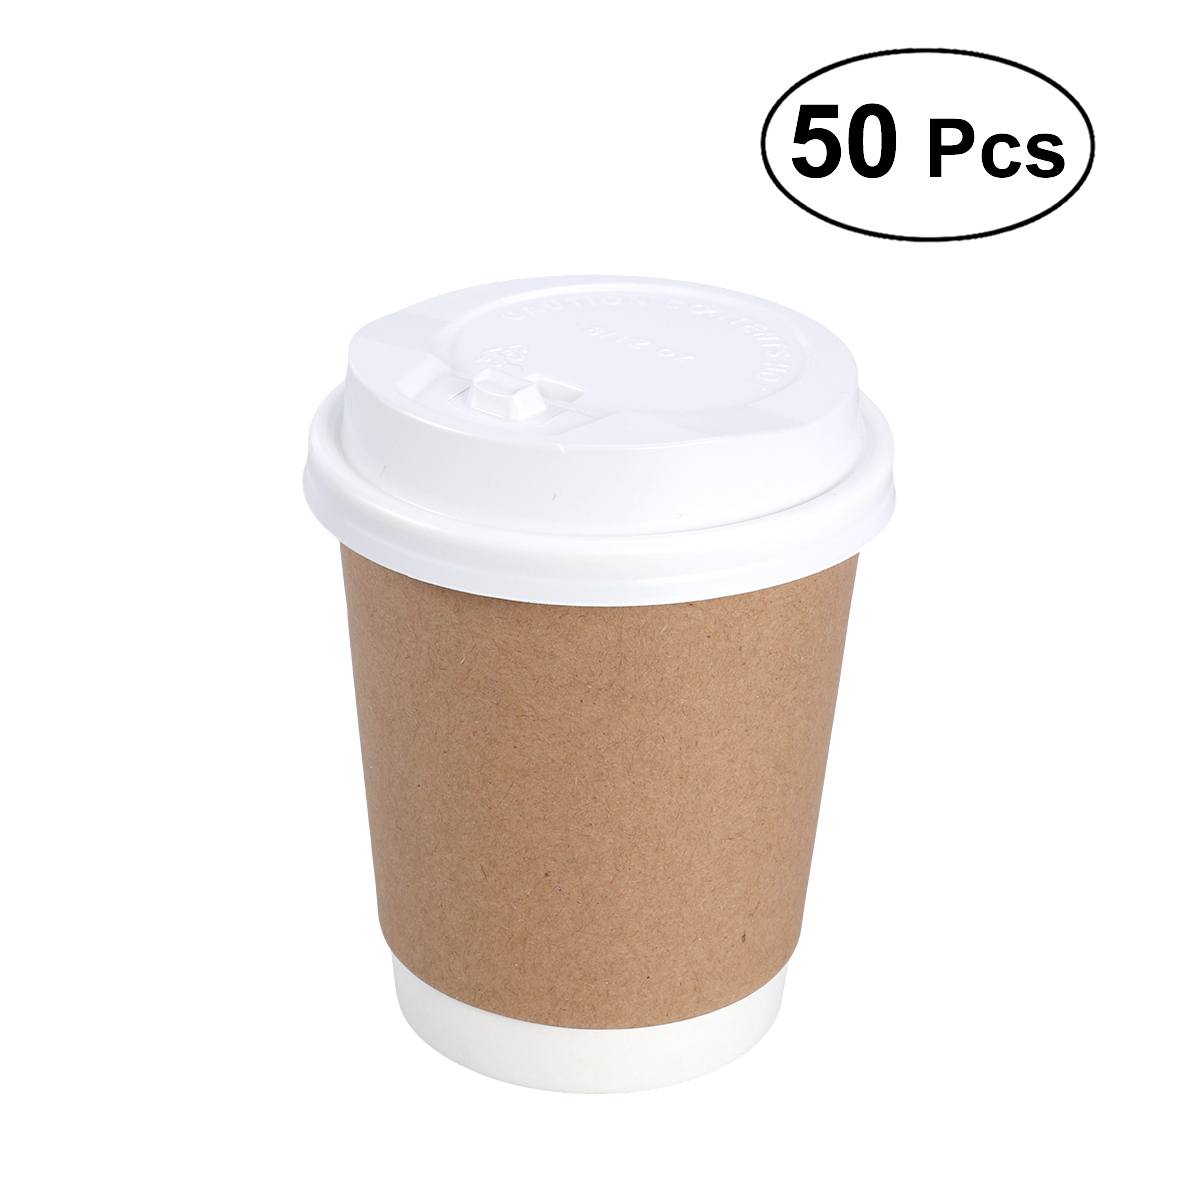 50pcs 8oz Disposable Thicken Paper Cups for Juice Milk Tea for Party Weddings Hot Drinks Takeout Coffee Cup with White Lid cup